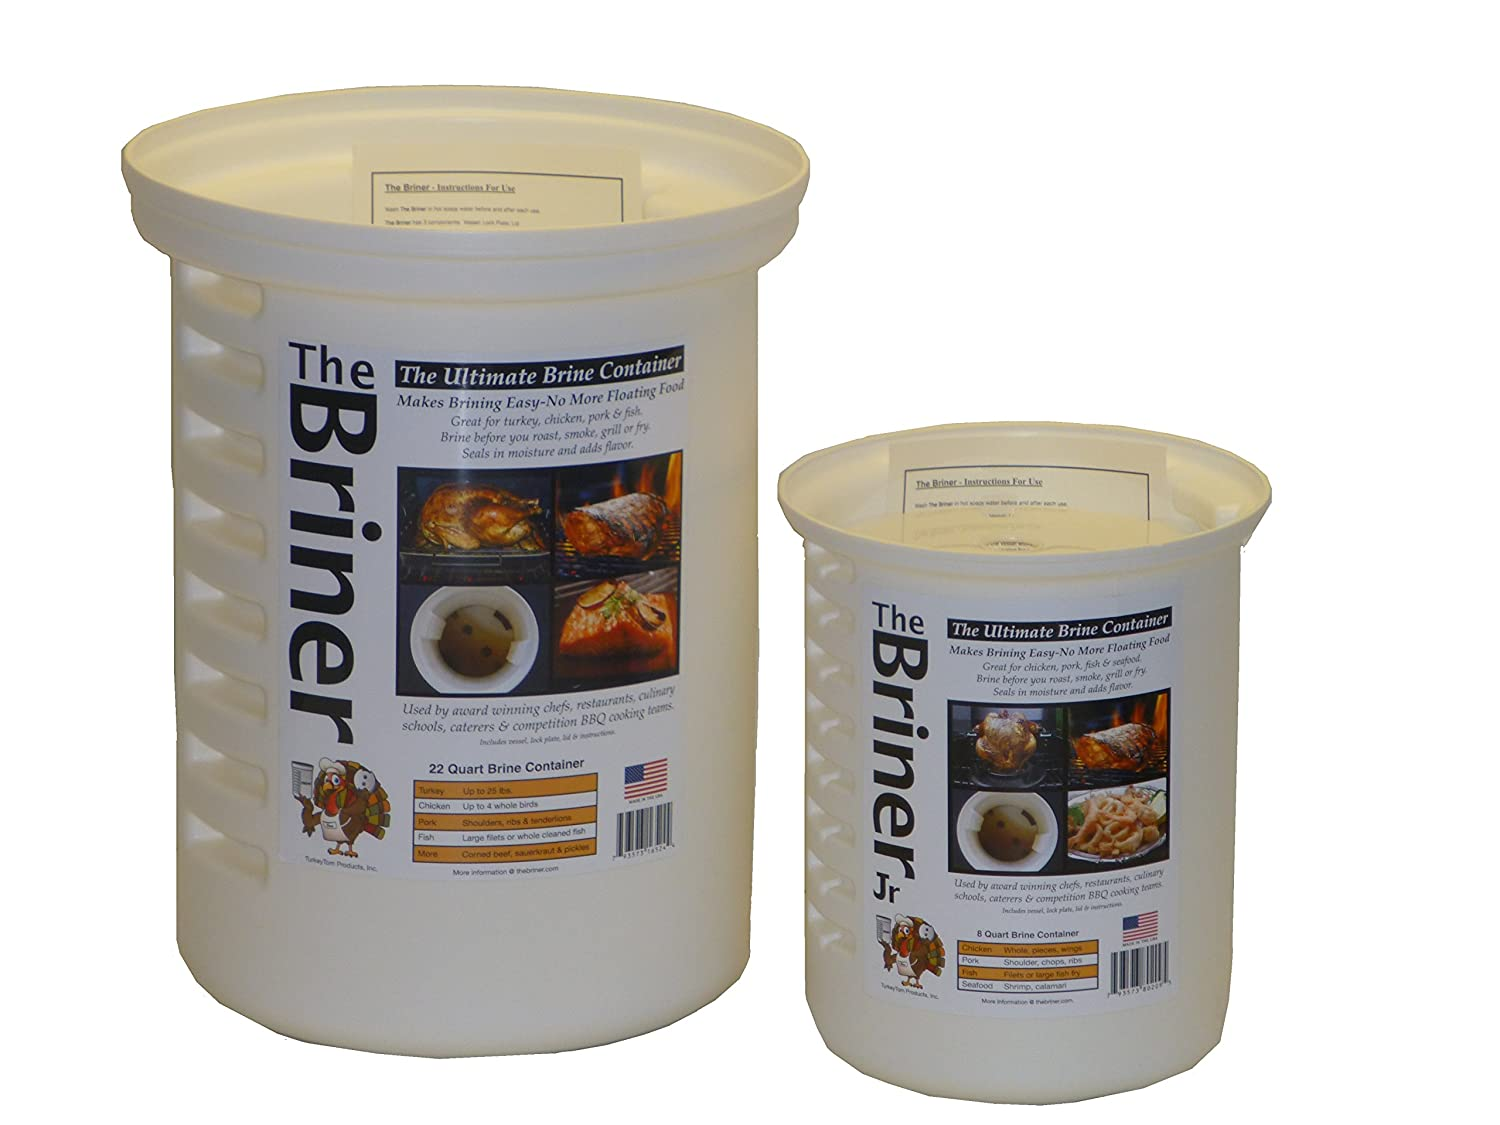 The Briner - The Ultimate Brine Container (2, 22 qt / 8 qt)